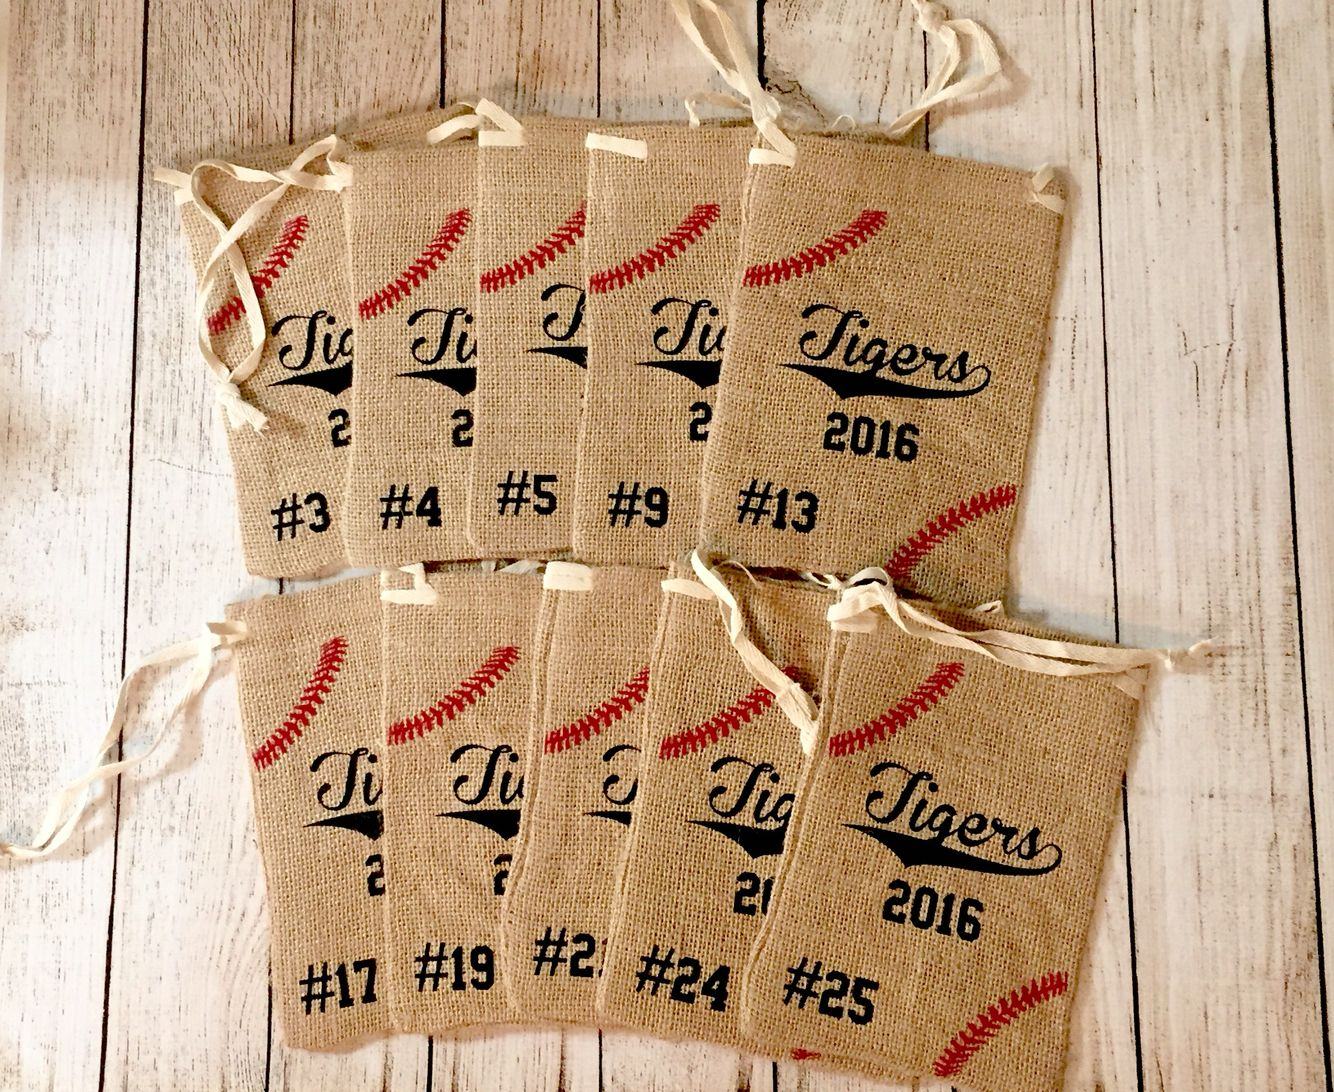 Team seed bags! Personalized. Yes! So doing this for our team. #baseballmom #baseballgifts https://www.etsy.com/listing/267243688/baseball-sunflower-seeds-bag?ref=featured_listings_row